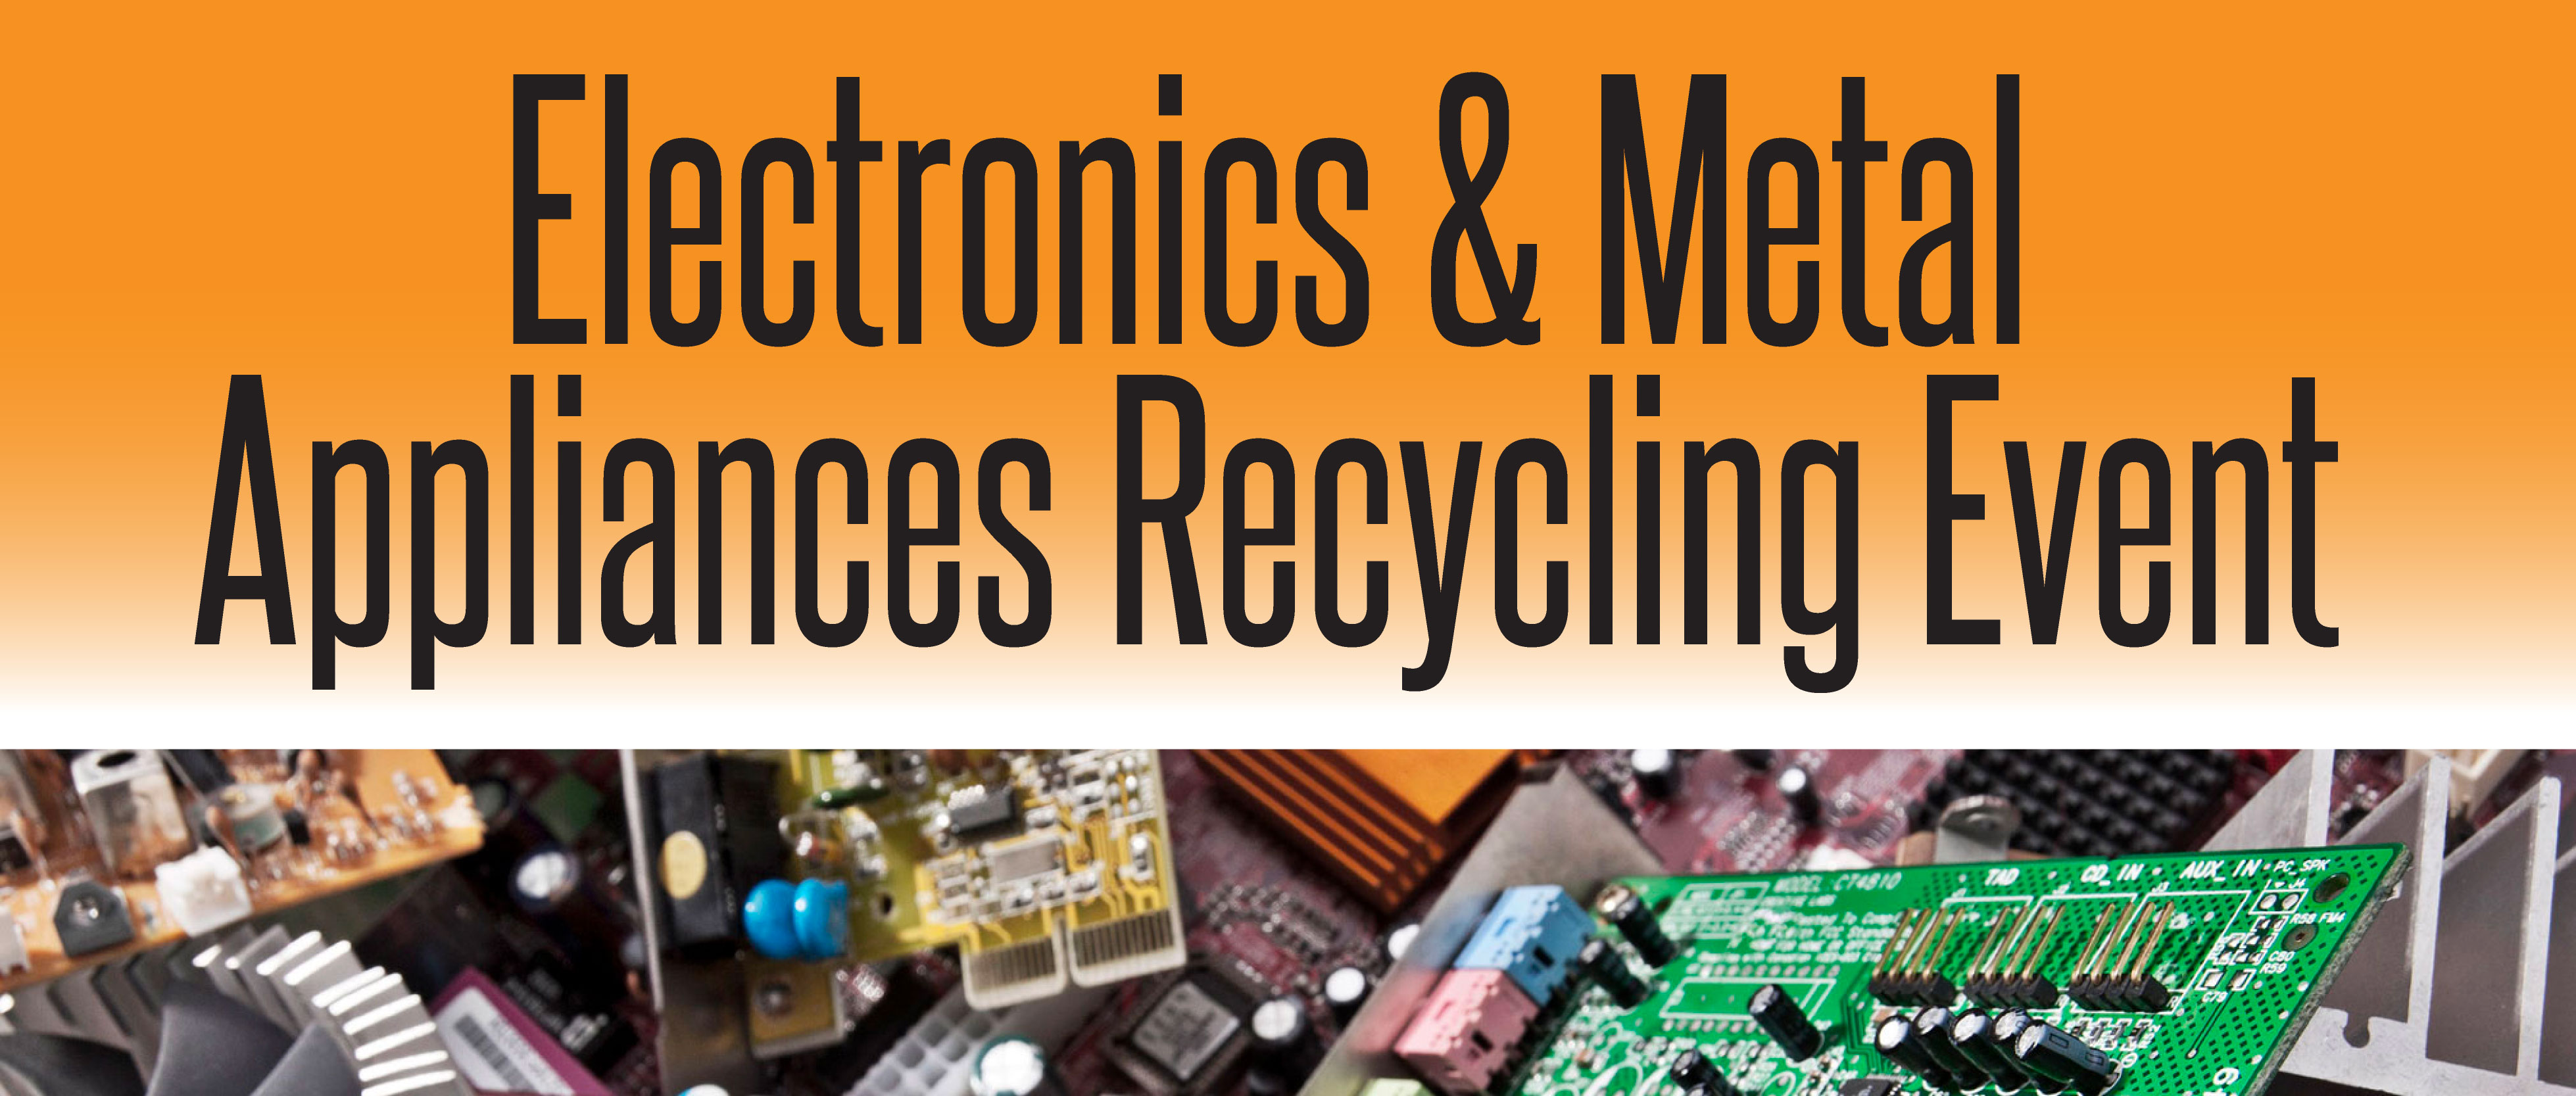 electronics-recycling-event-wp